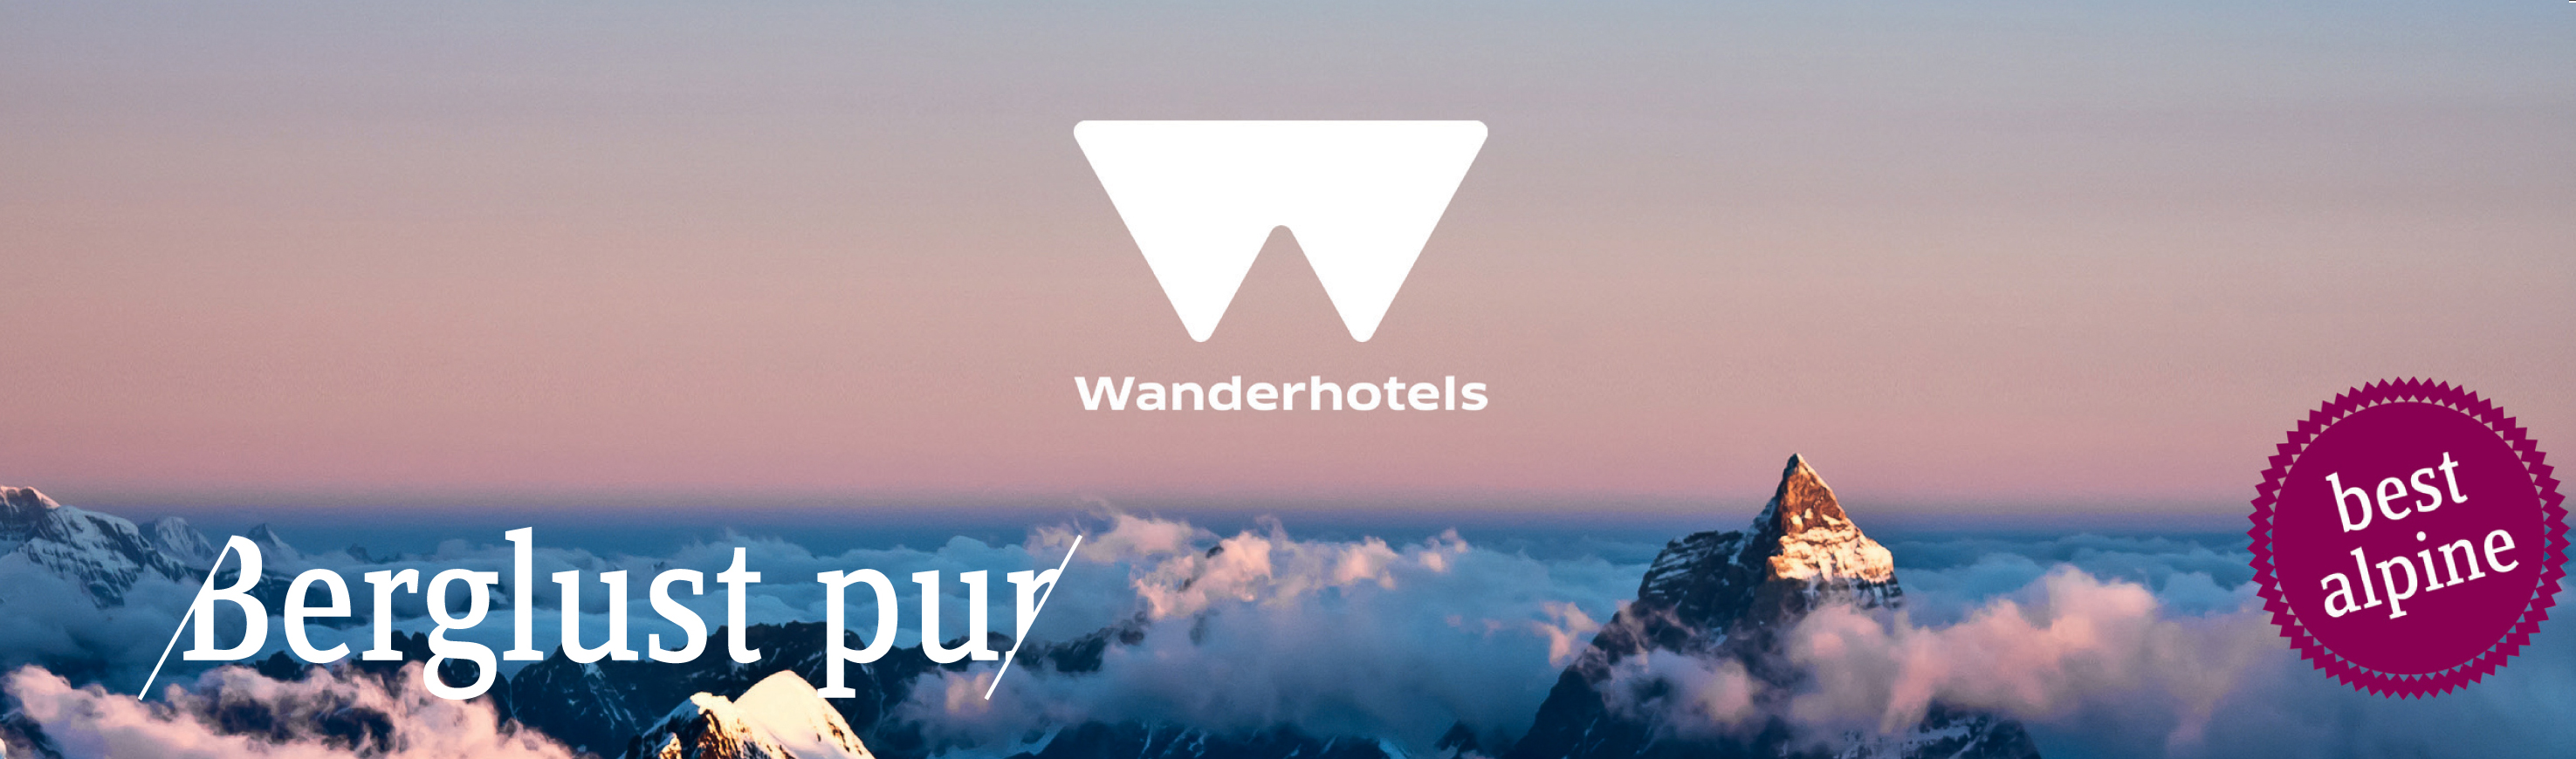 Wanderhotels best alpine